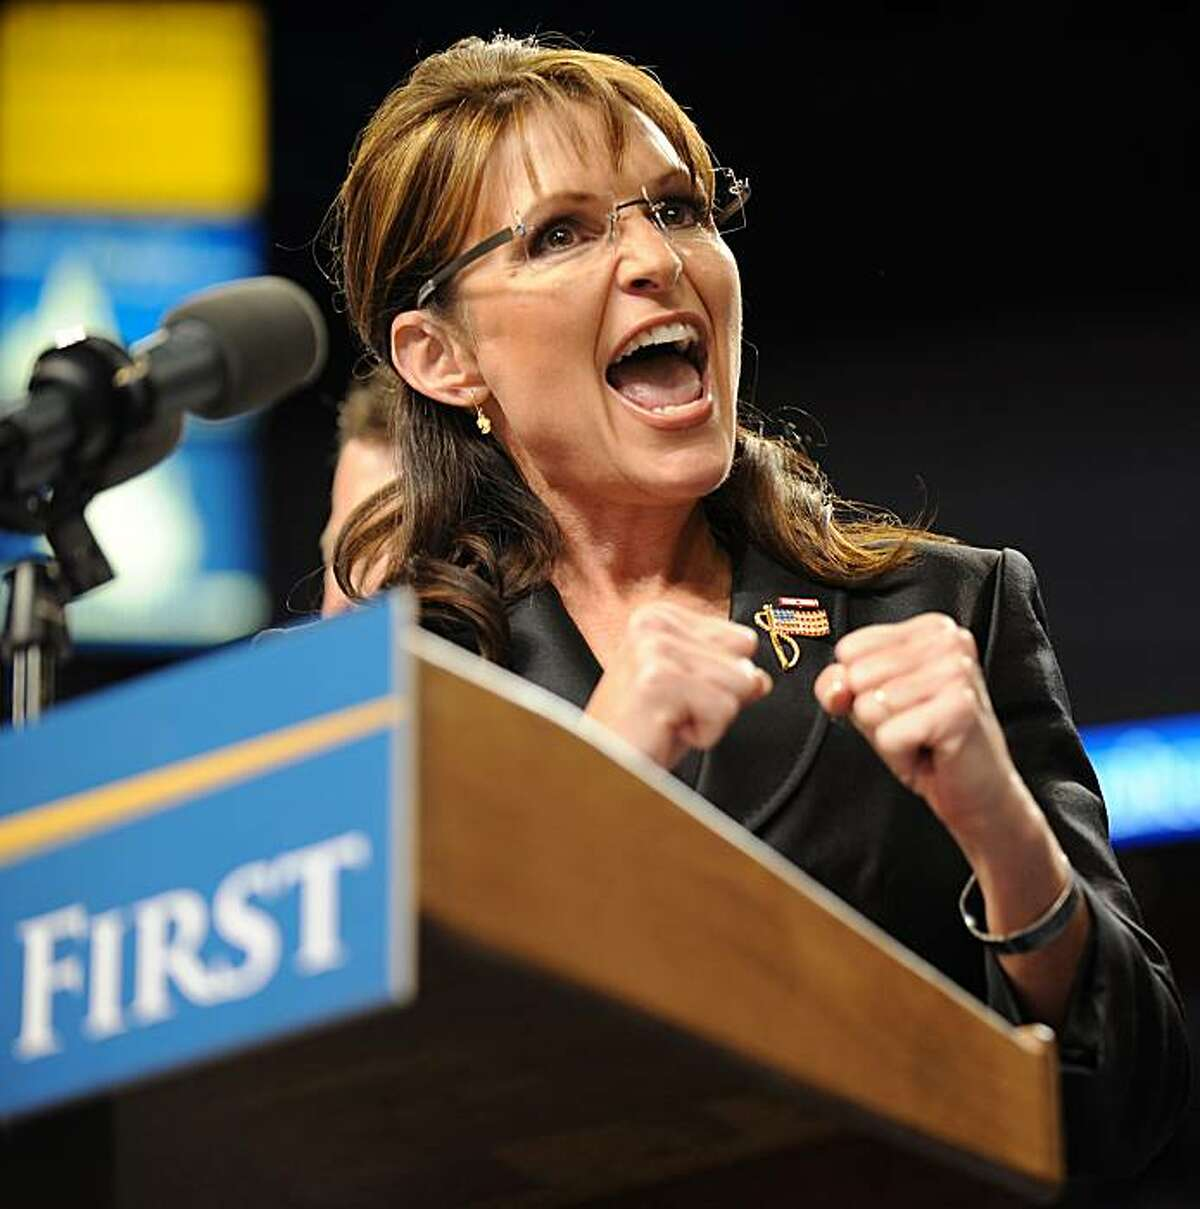 Republican vice presidential candidate Sarah Palin responds to cheers upon her arrival for a post-debate rally at St. Louis University's Chaifetz Arena in St. Louis, Missouri on October 02, 2008. Palin received a rock-star welcome at the rally after holding her own in a highly-anticipated US vice presidential debate with Democrat Joseph Biden. AFP PHOTO / Robyn BECK (Photo credit should read ROBYN BECK/AFP/Getty Images)